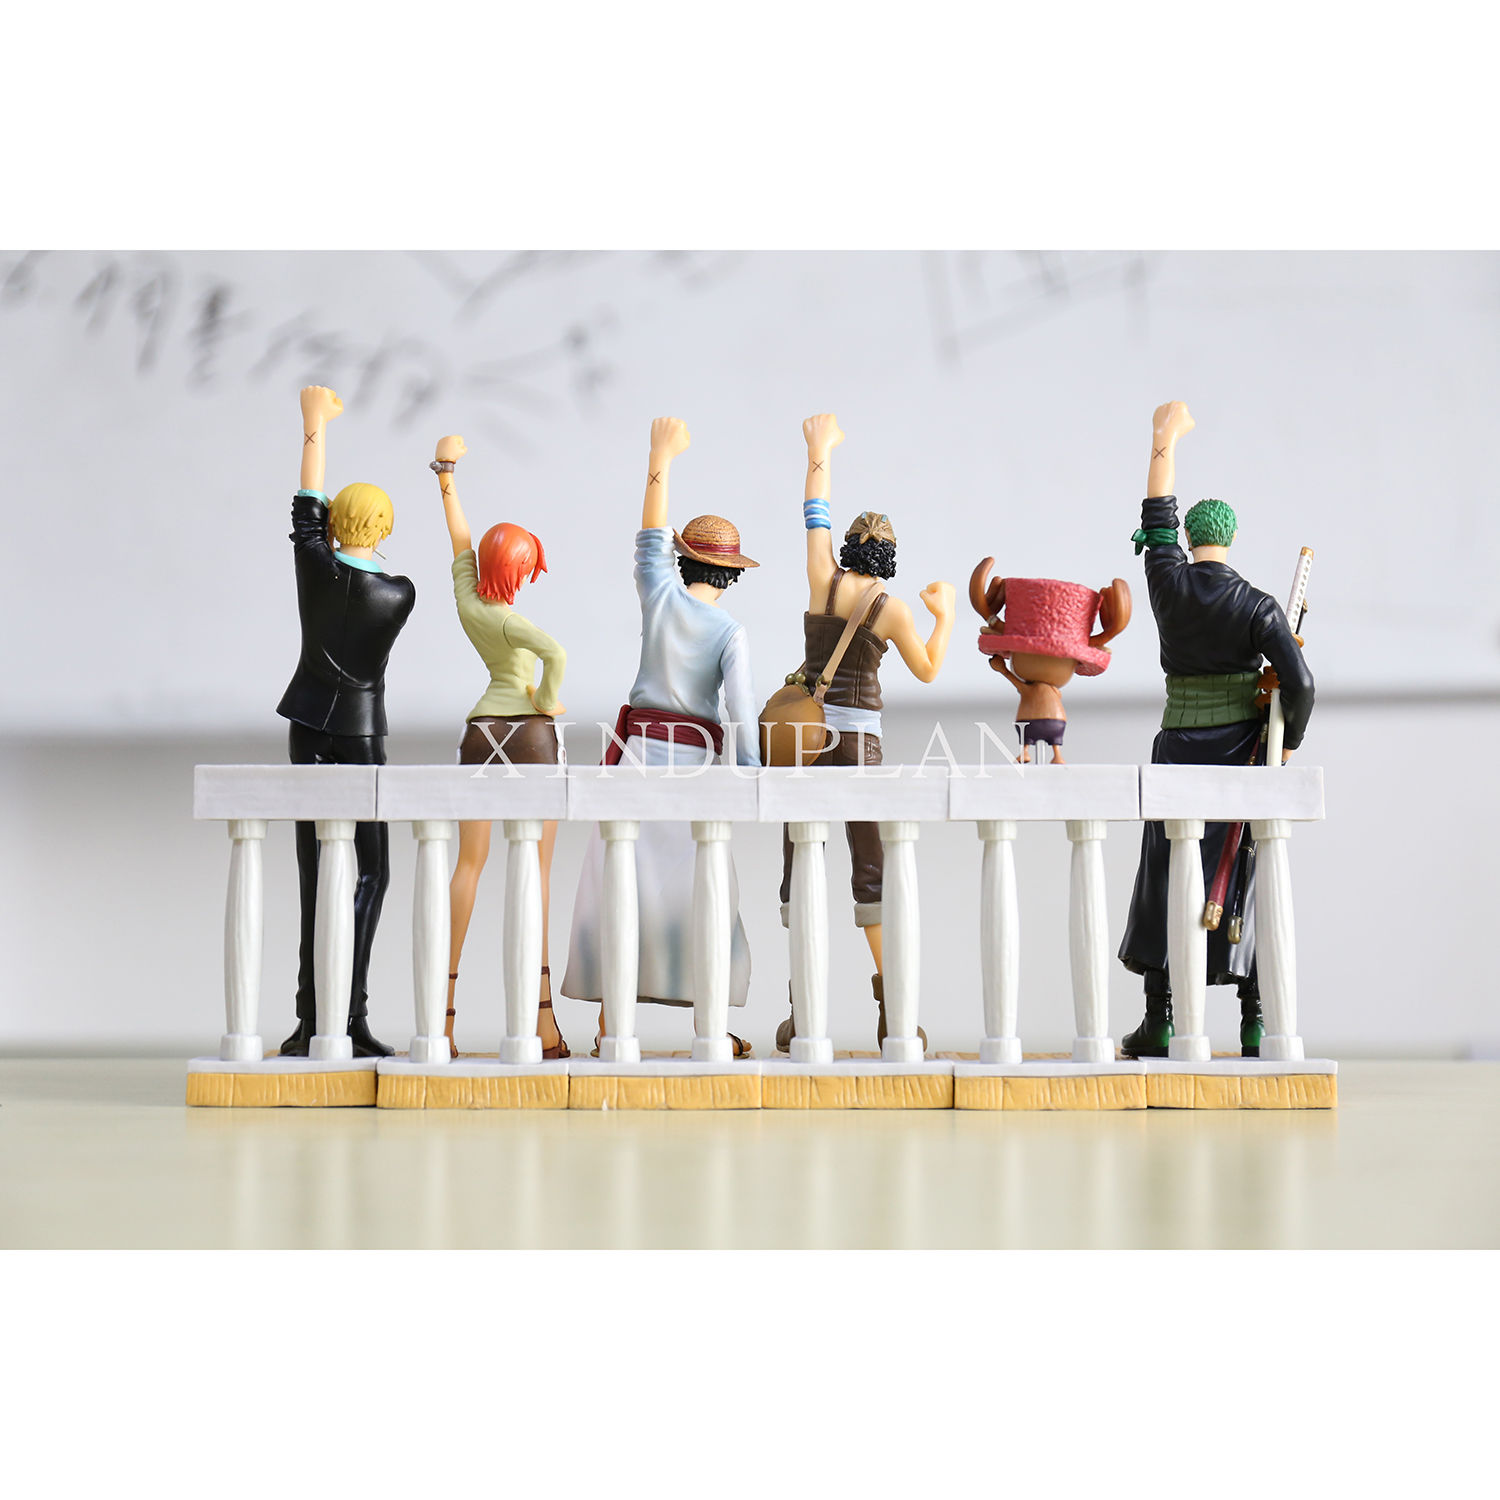 XINDUPLAN One Piece Anime Alabasta Straw Hat Pirates Luffy Zoro Sanji Nami Chopper Onepiece Action Figure Toy 6PCS Model 0075 one piece action figure roronoa zoro led light figuarts zero model toy 200mm pvc toy one piece anime zoro figurine diorama